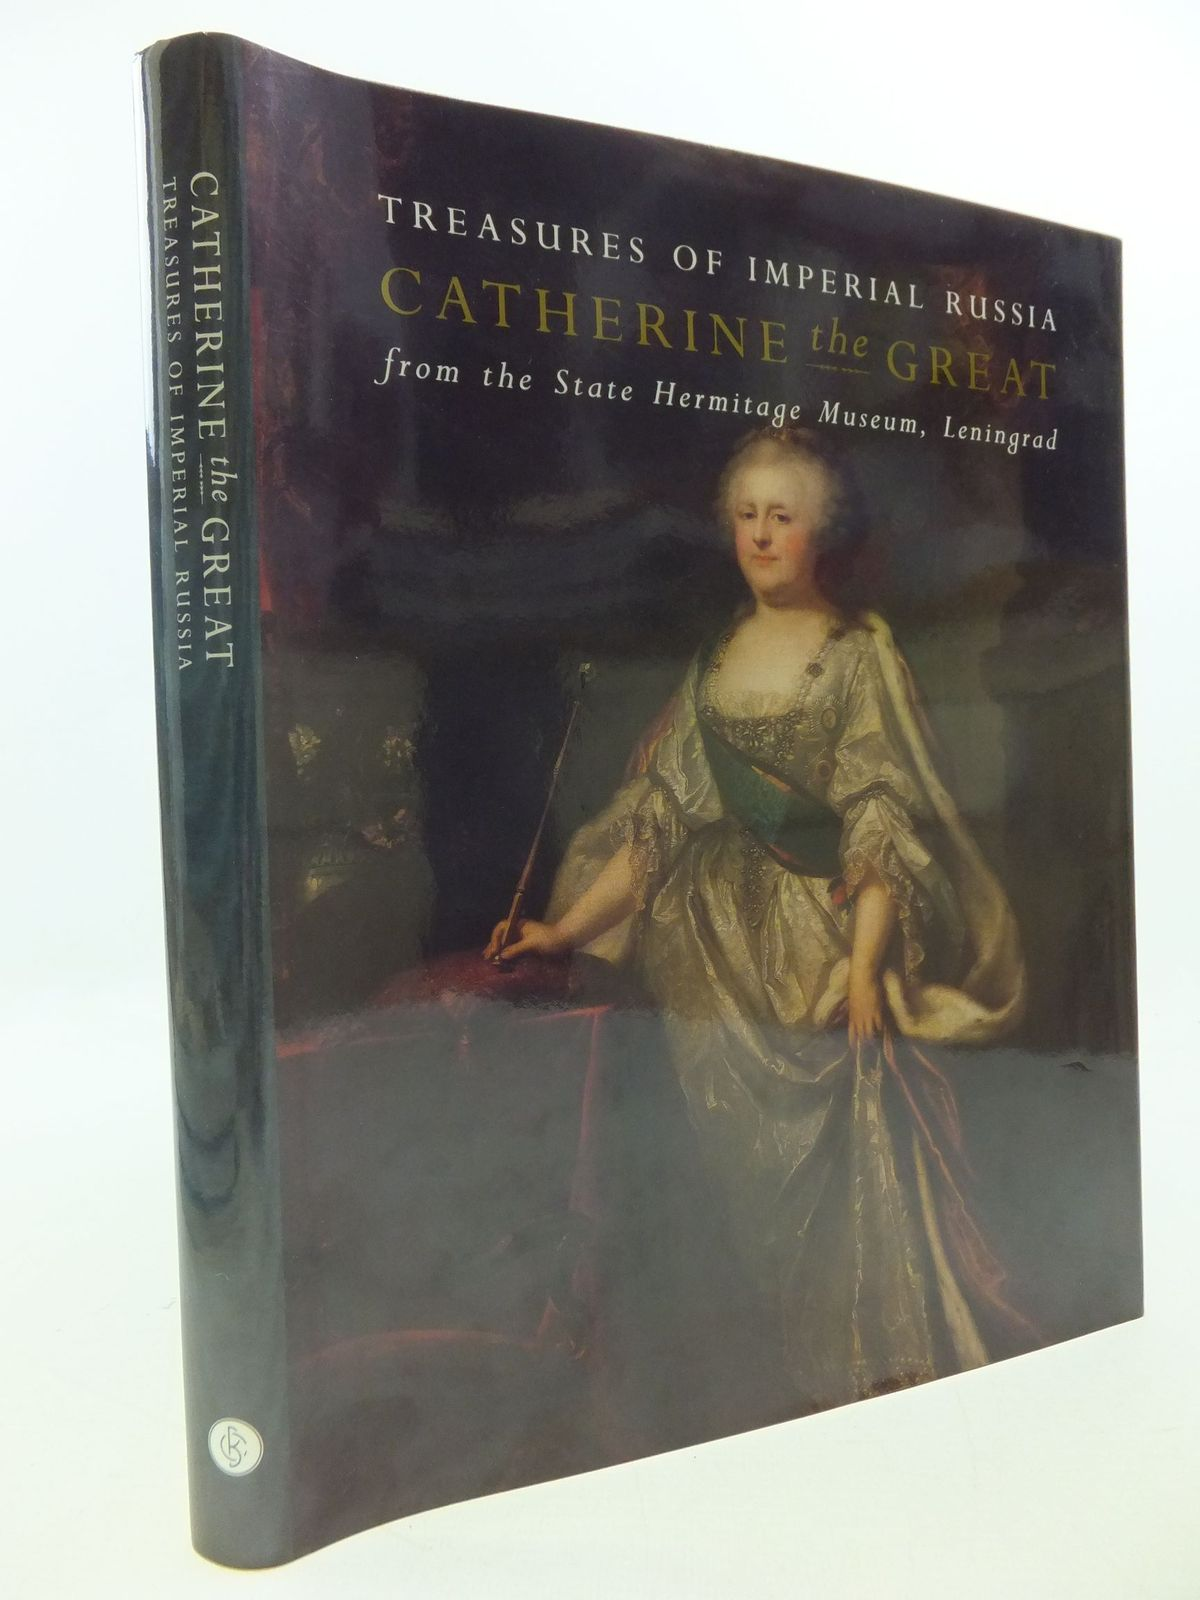 Photo of TREASURES OF IMPERIAL RUSSIA CATHERINE THE GREAT FROM THE STATE HERMITAGE MUSEUM, LENINGRAD published by Booth-Clibborn (STOCK CODE: 2112683)  for sale by Stella & Rose's Books